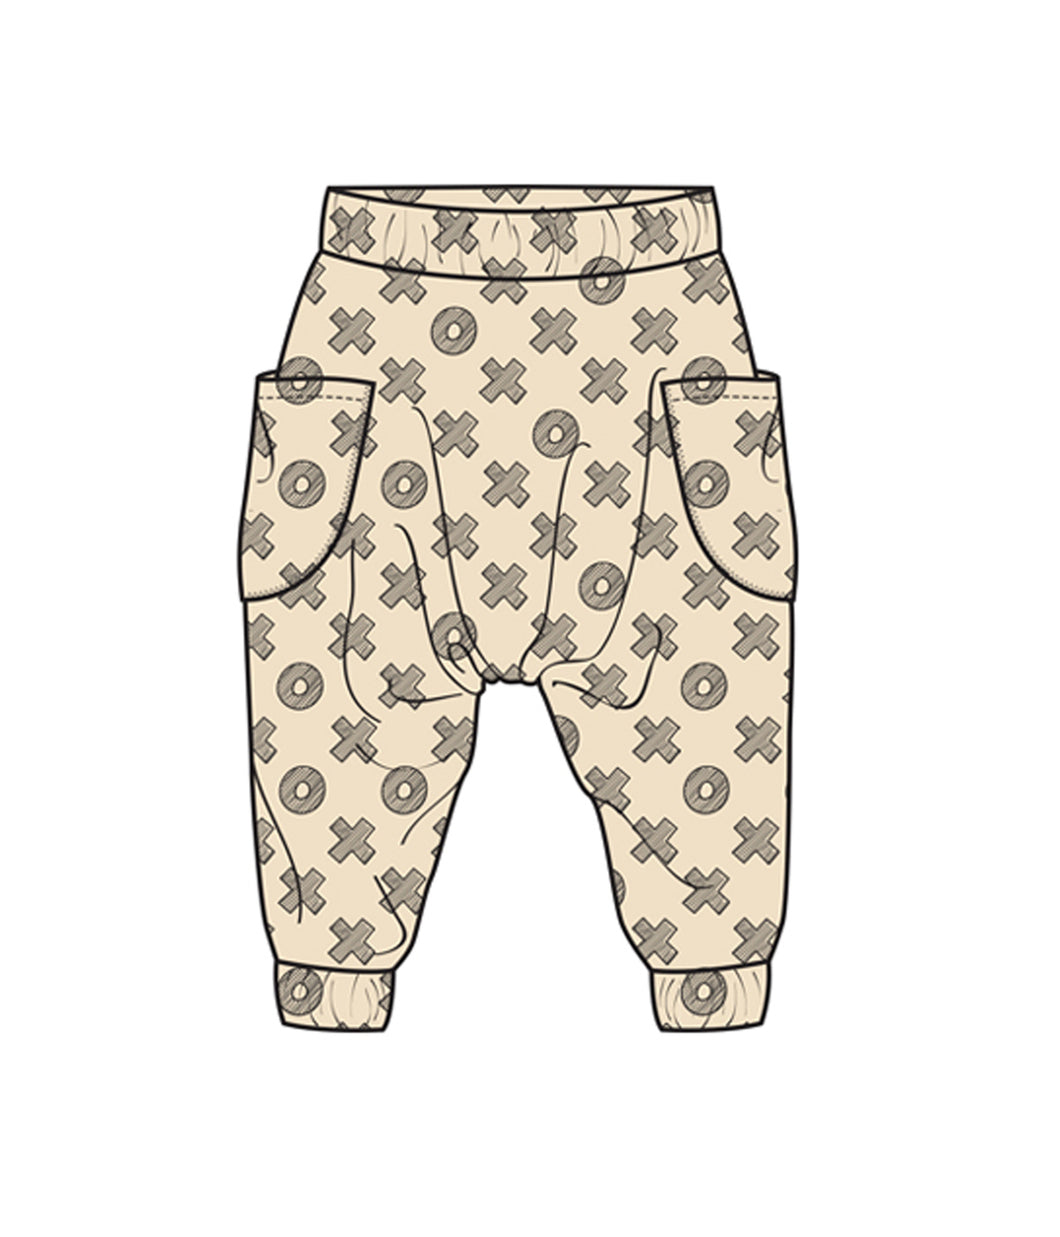 Tic Tac Toe organic cotton harem pants